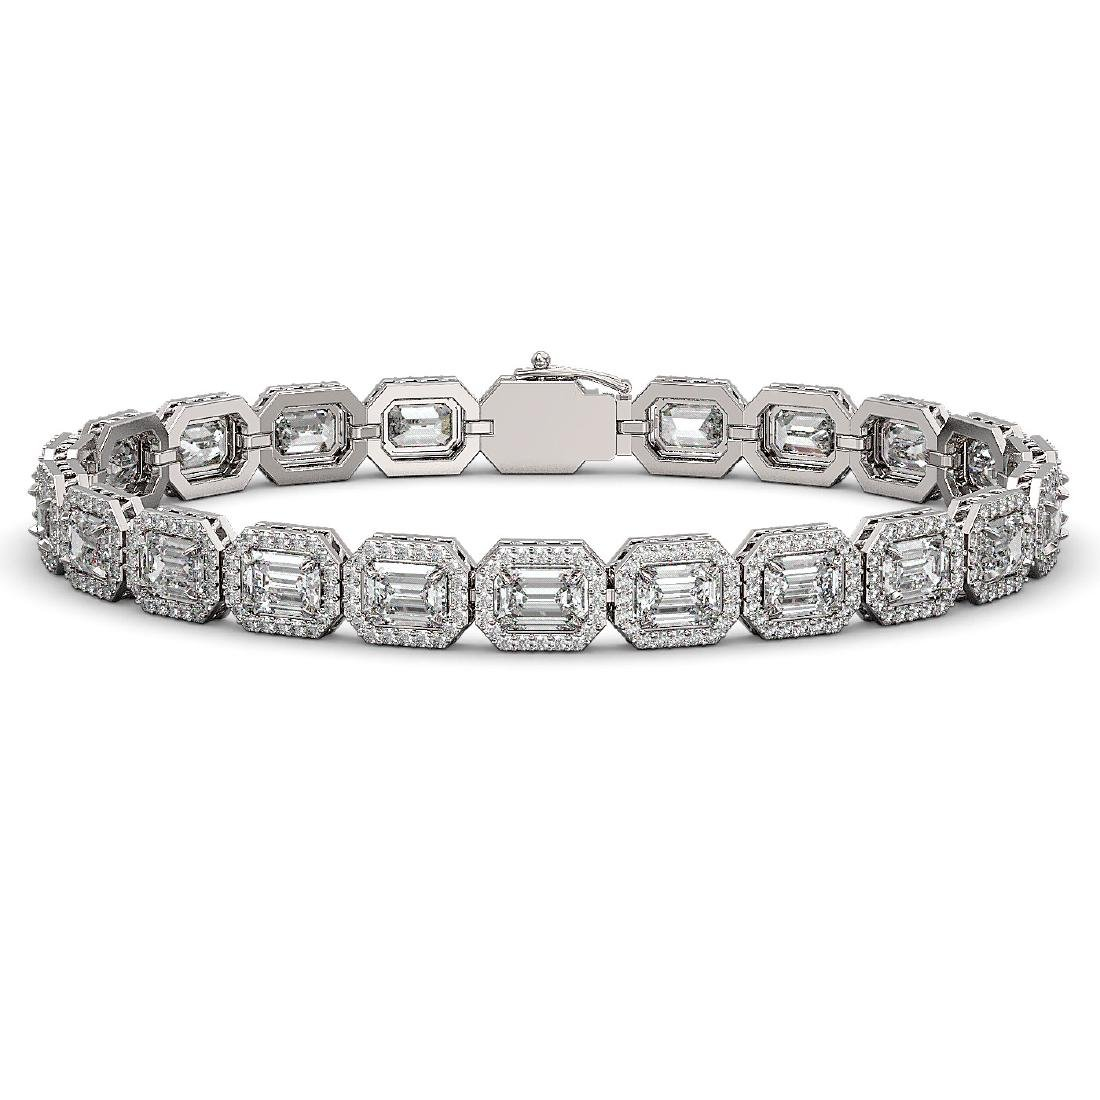 14.57 CTW Emerald Cut Diamond Designer Bracelet 18K